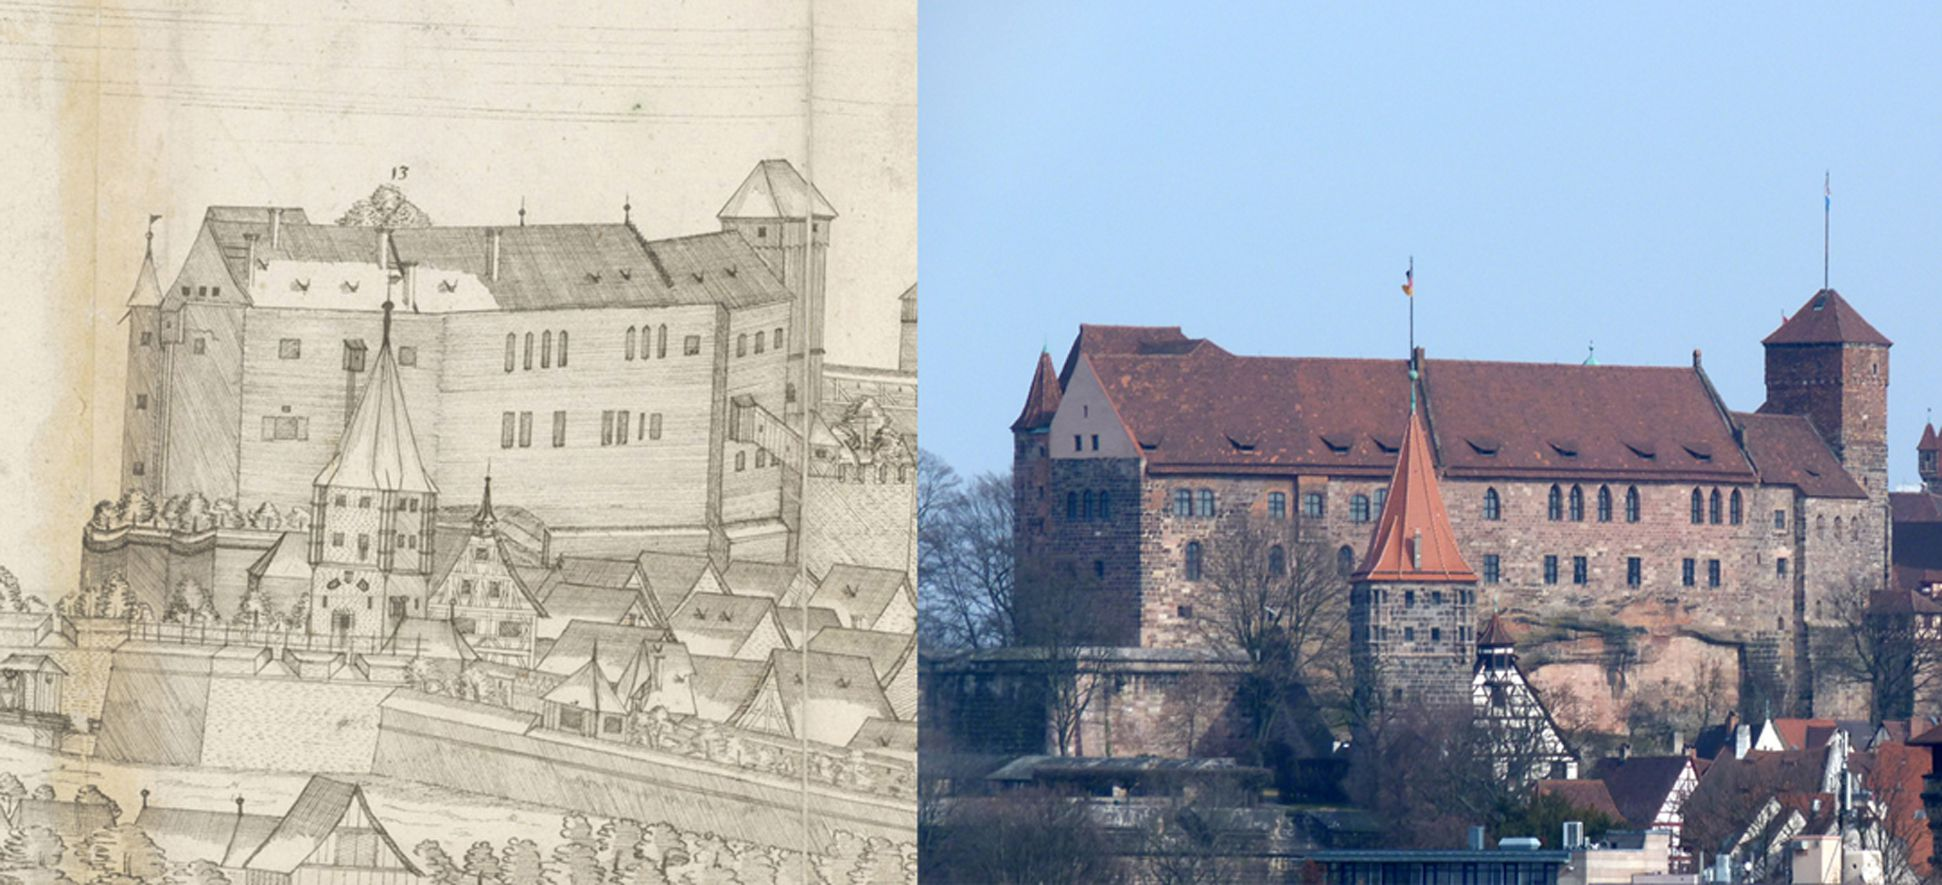 Panoramic view of the City of Nuremberg as seen from the west Contrasting detail with Neutorgraben, Tiergärtnerrorturm, Great Hall and Ladies´Chamber and Chapel of the Castle, Heidenturm (Heathens`Tower) with the state of today